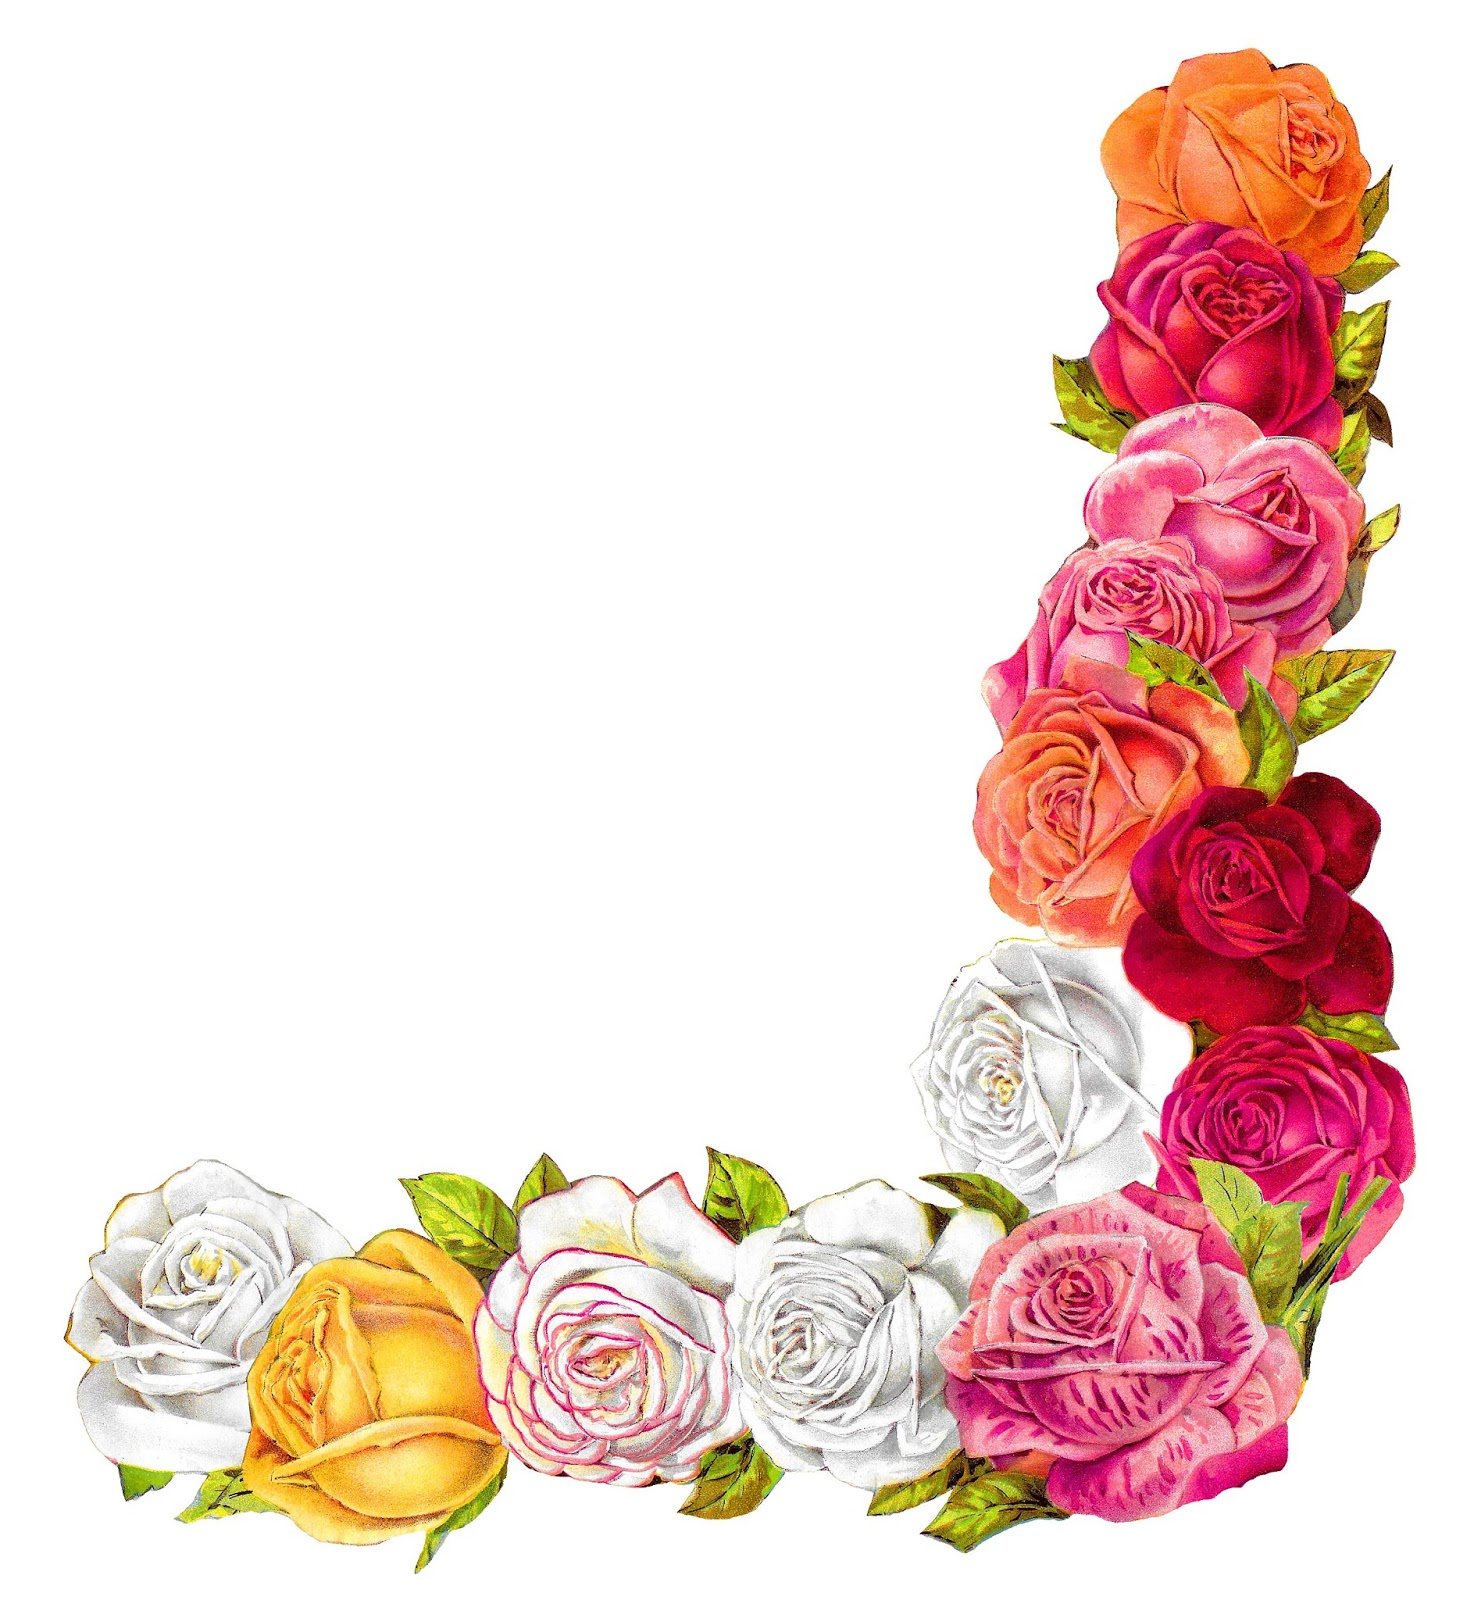 The Graphics Monarch: Digital Vintage Shabby Chic Rose.